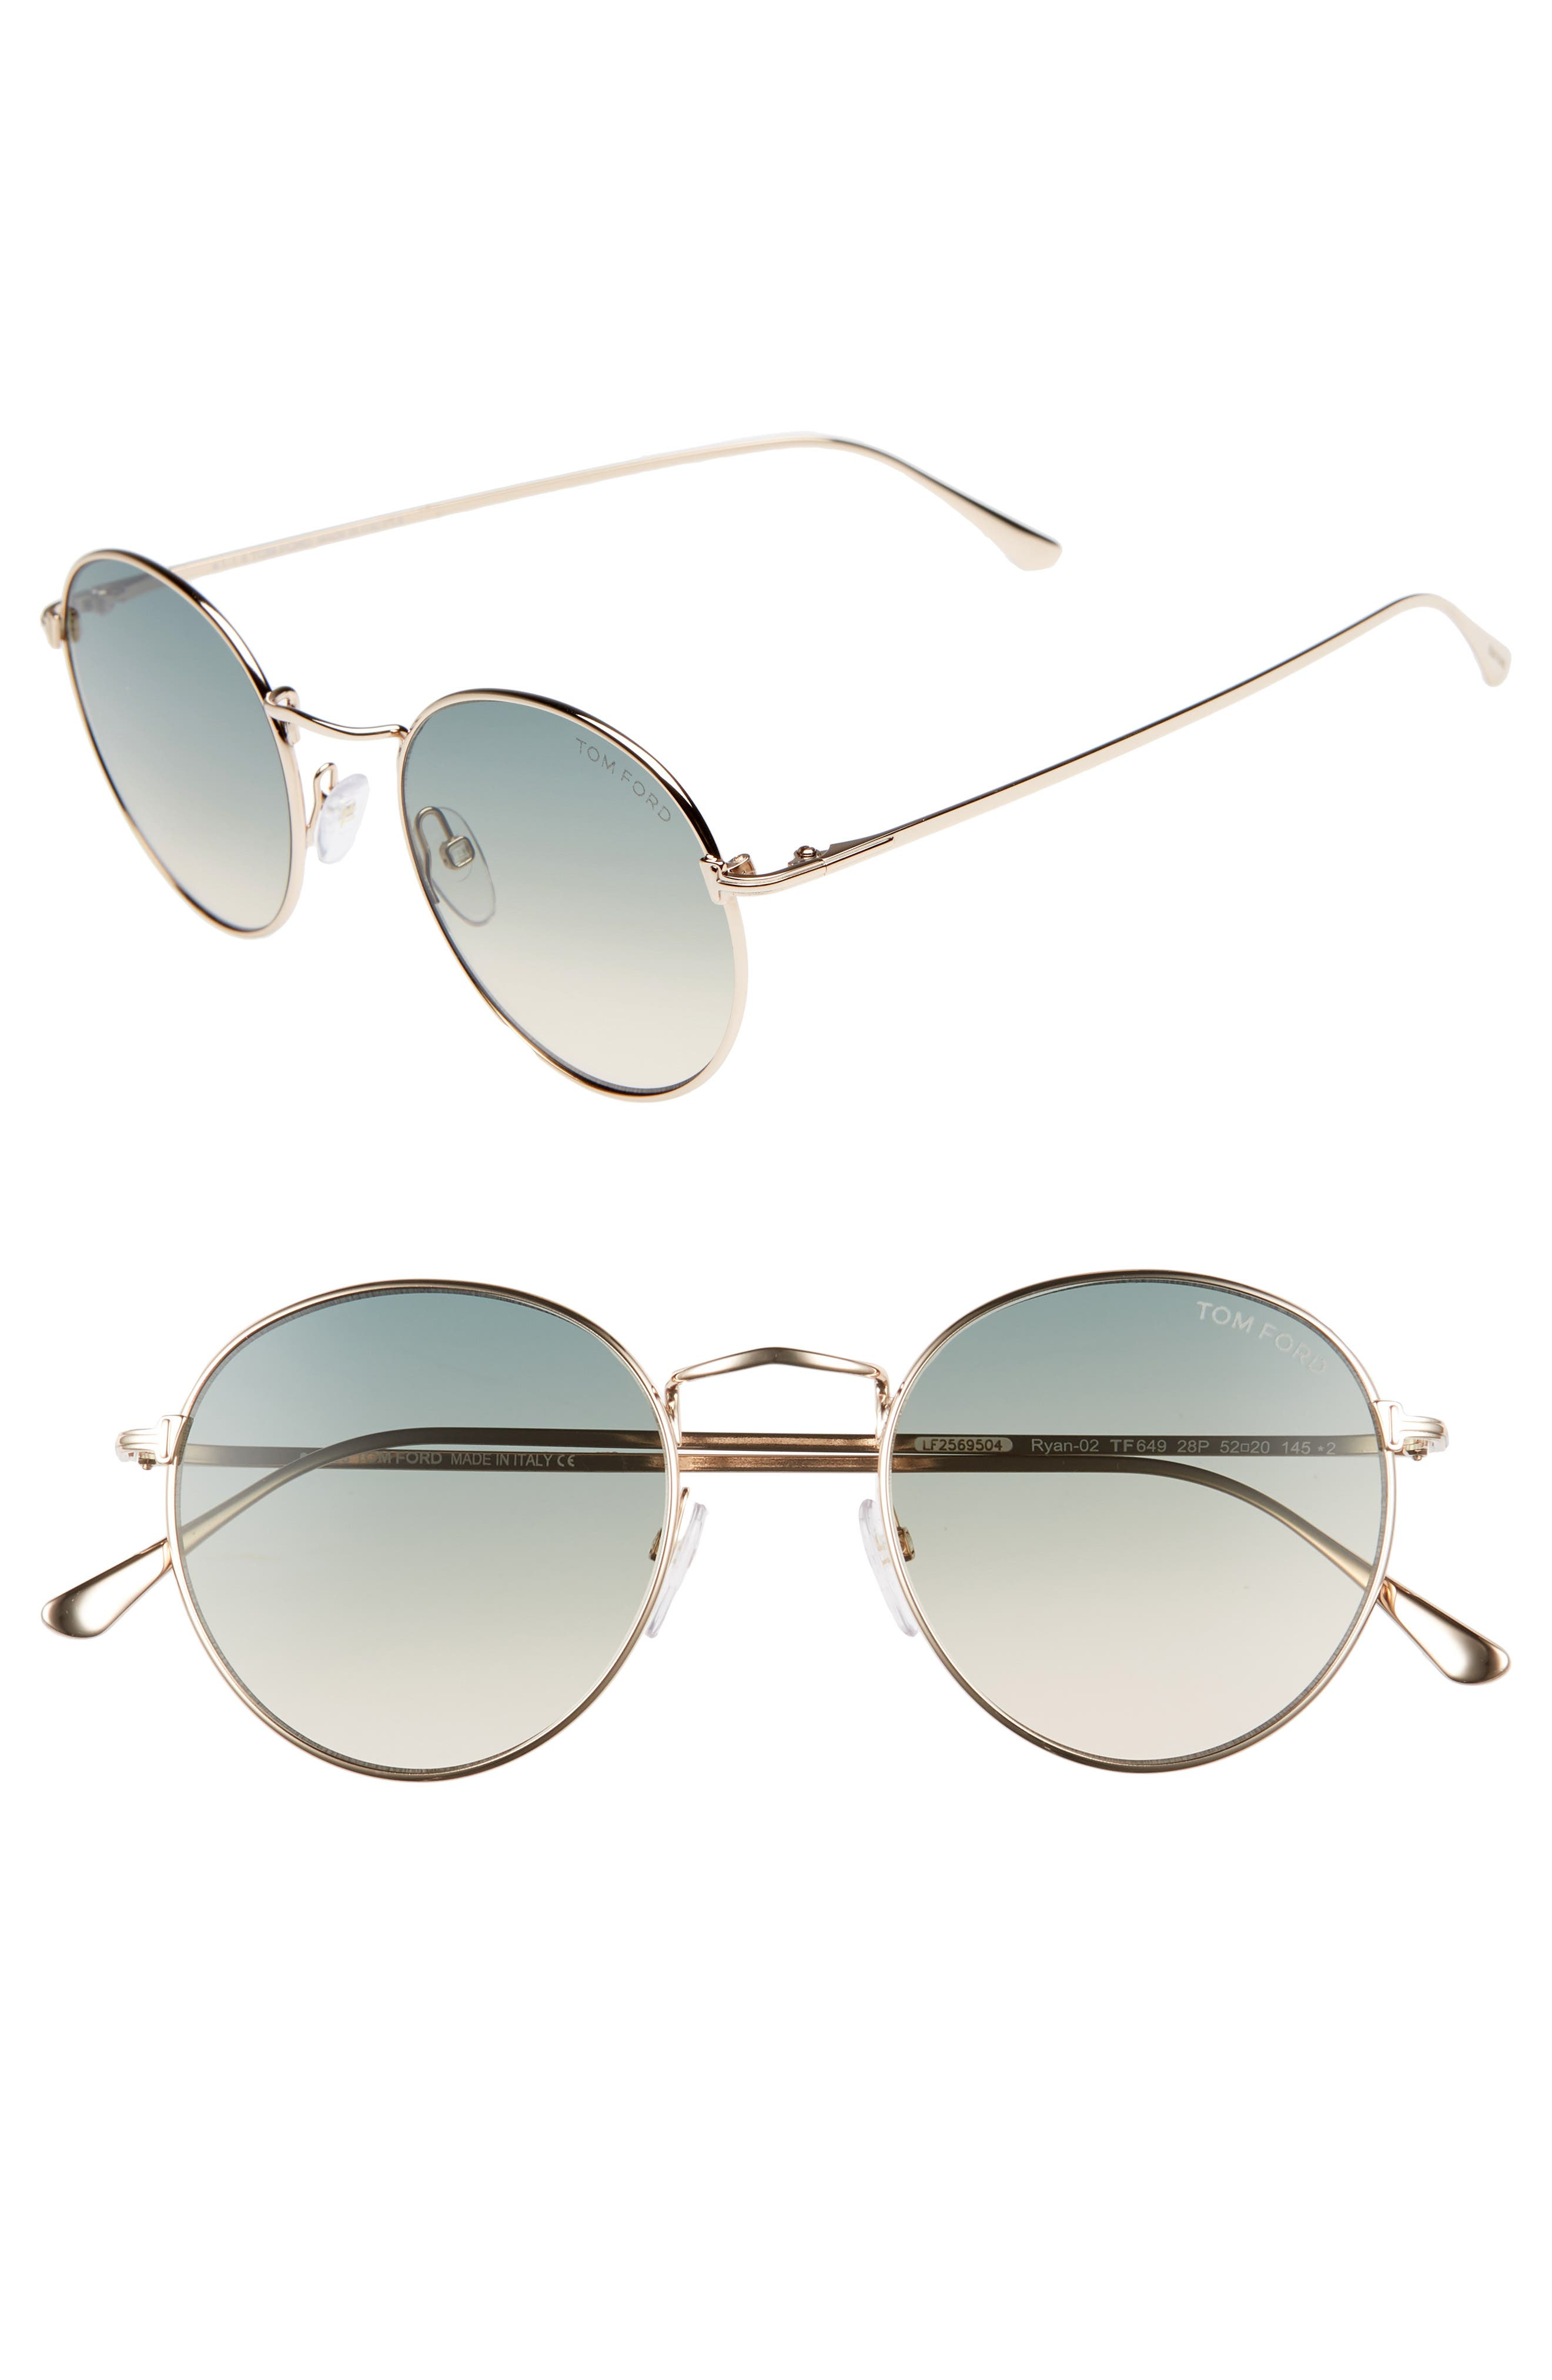 Ryan 52Mm Round Sunglasses - Yellow Gold in Rose Gold